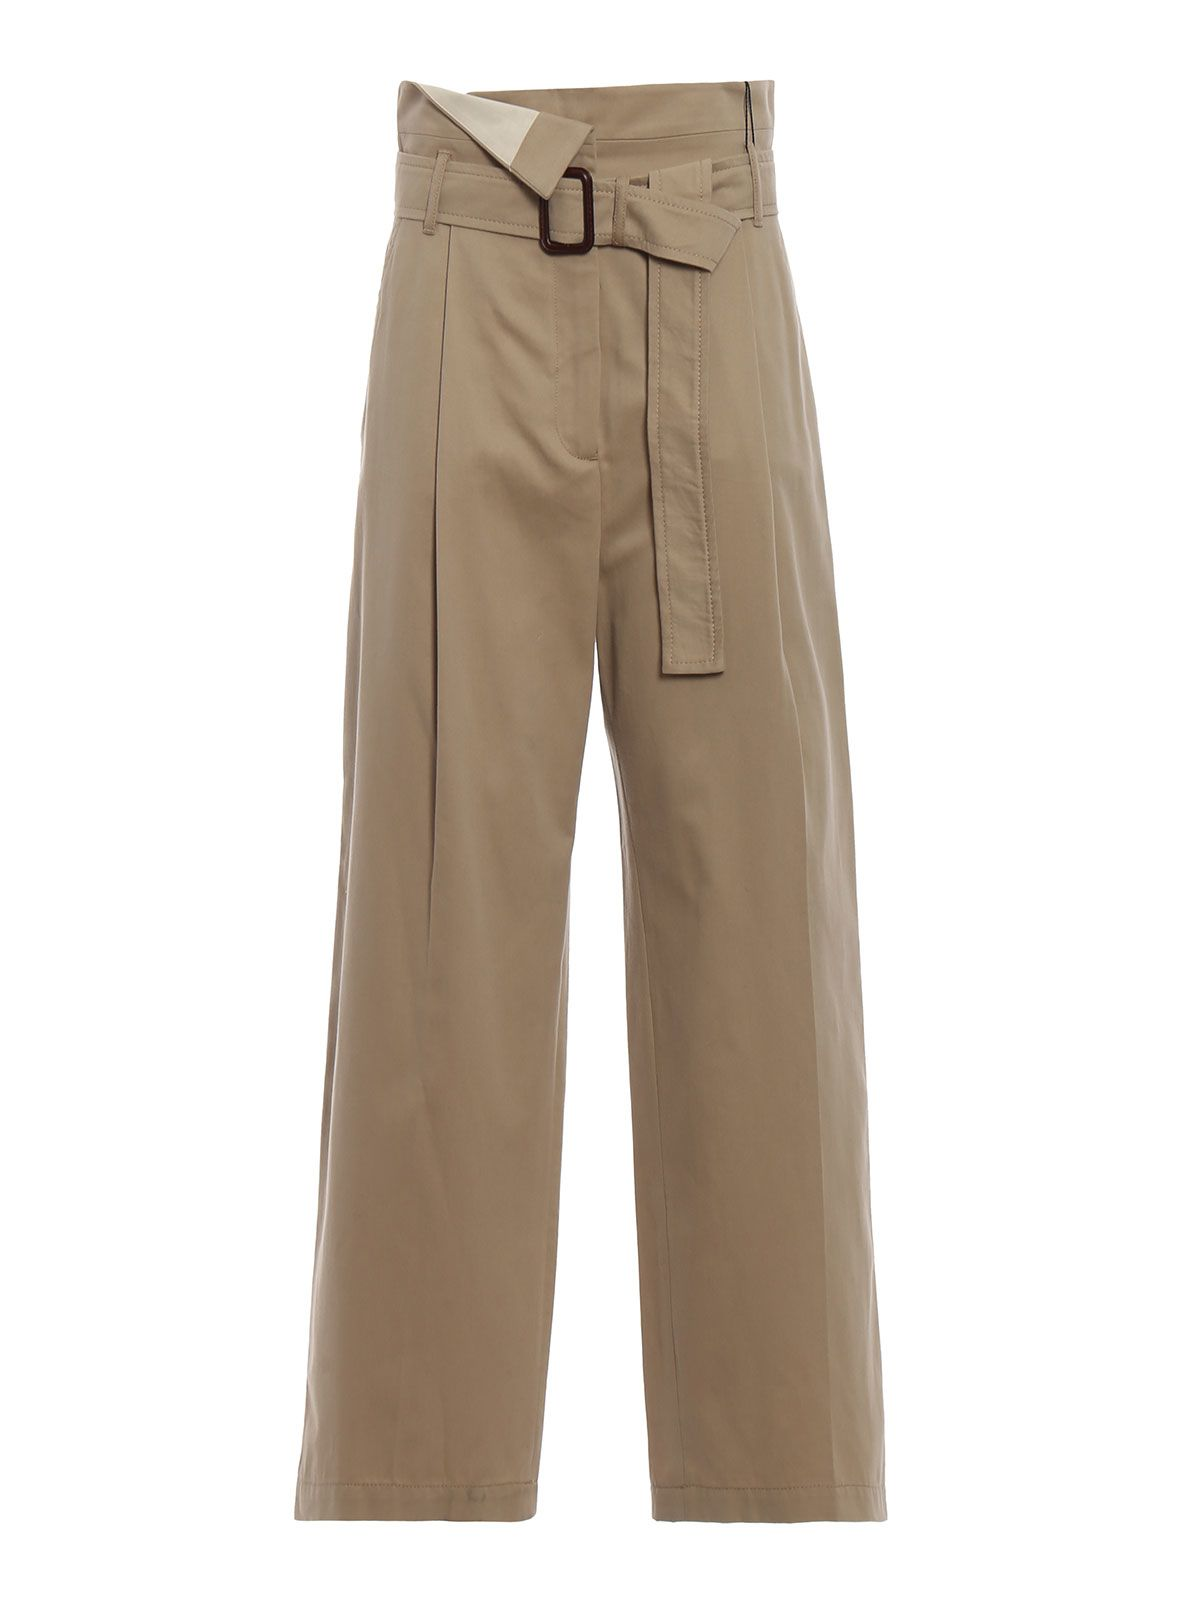 max mara -  Ebro Beige Cotton Drill Wide Leg Trousers